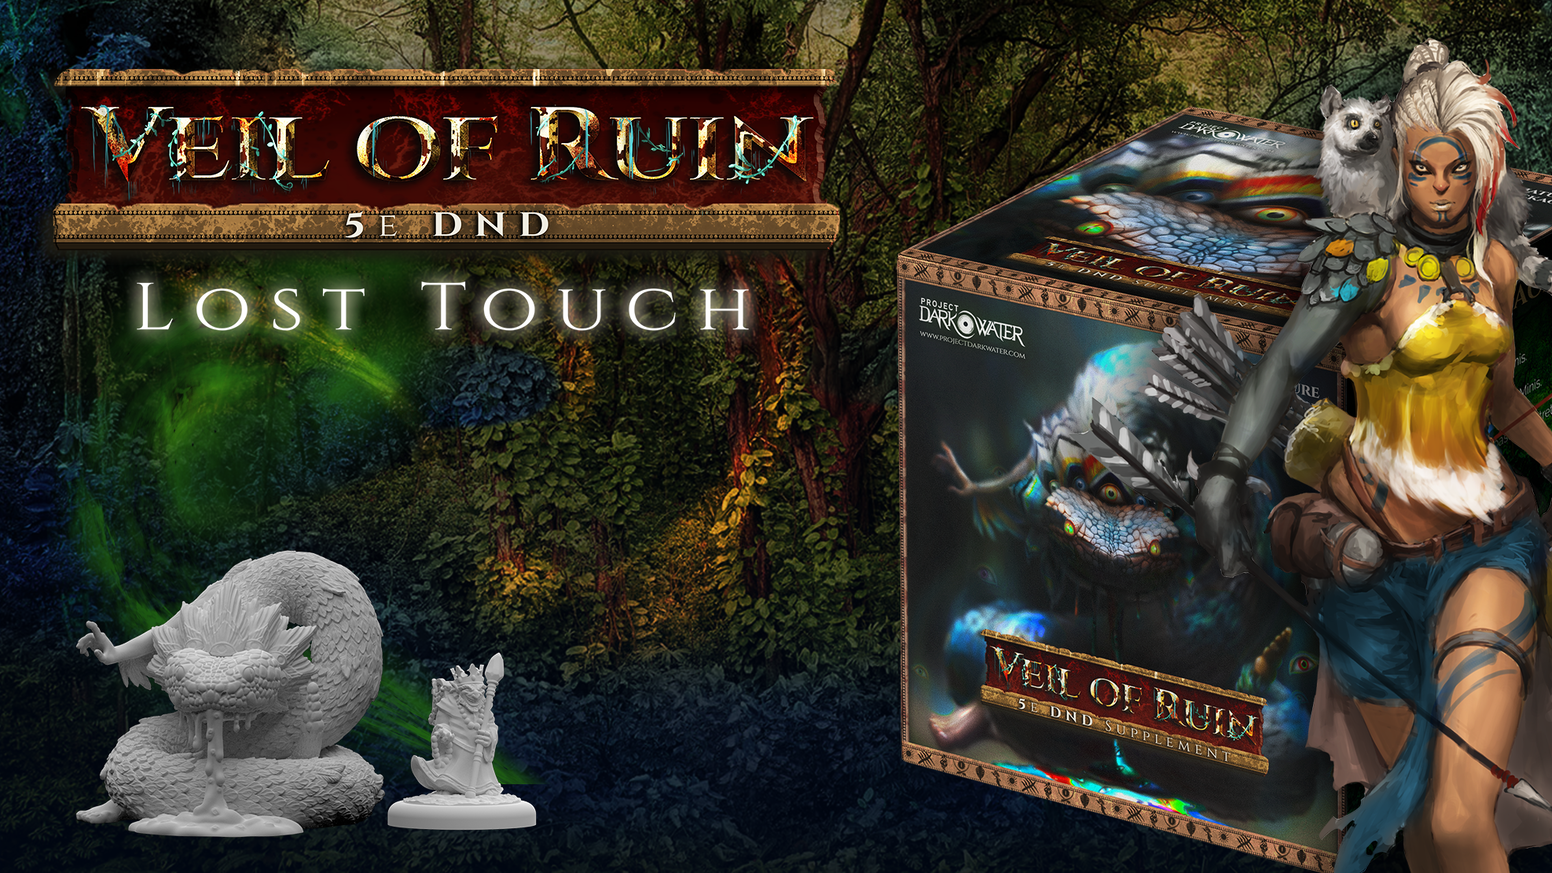 Veil of Ruin is a post-apocalyptic fantasy campaign setting for DnD 5e, complete with a compelling adventure and finely crafted minis.